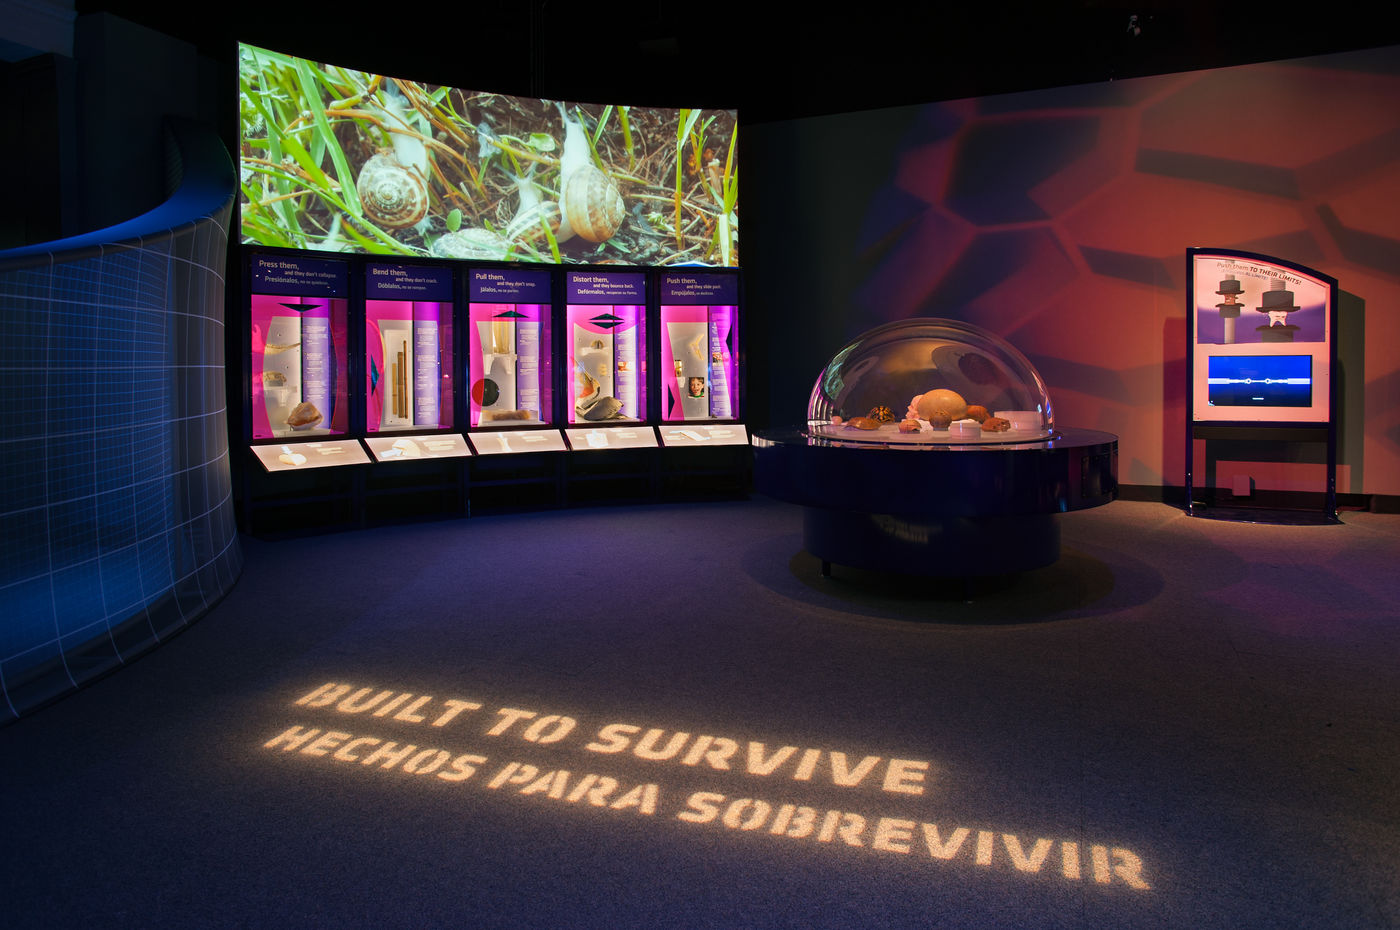 "View of the Machine Inside: Biomechanics exhibition, showing a case of shells, a wall projection of snails in grass, and the words ""Built to Survive"" projected on the floor in the foreground."